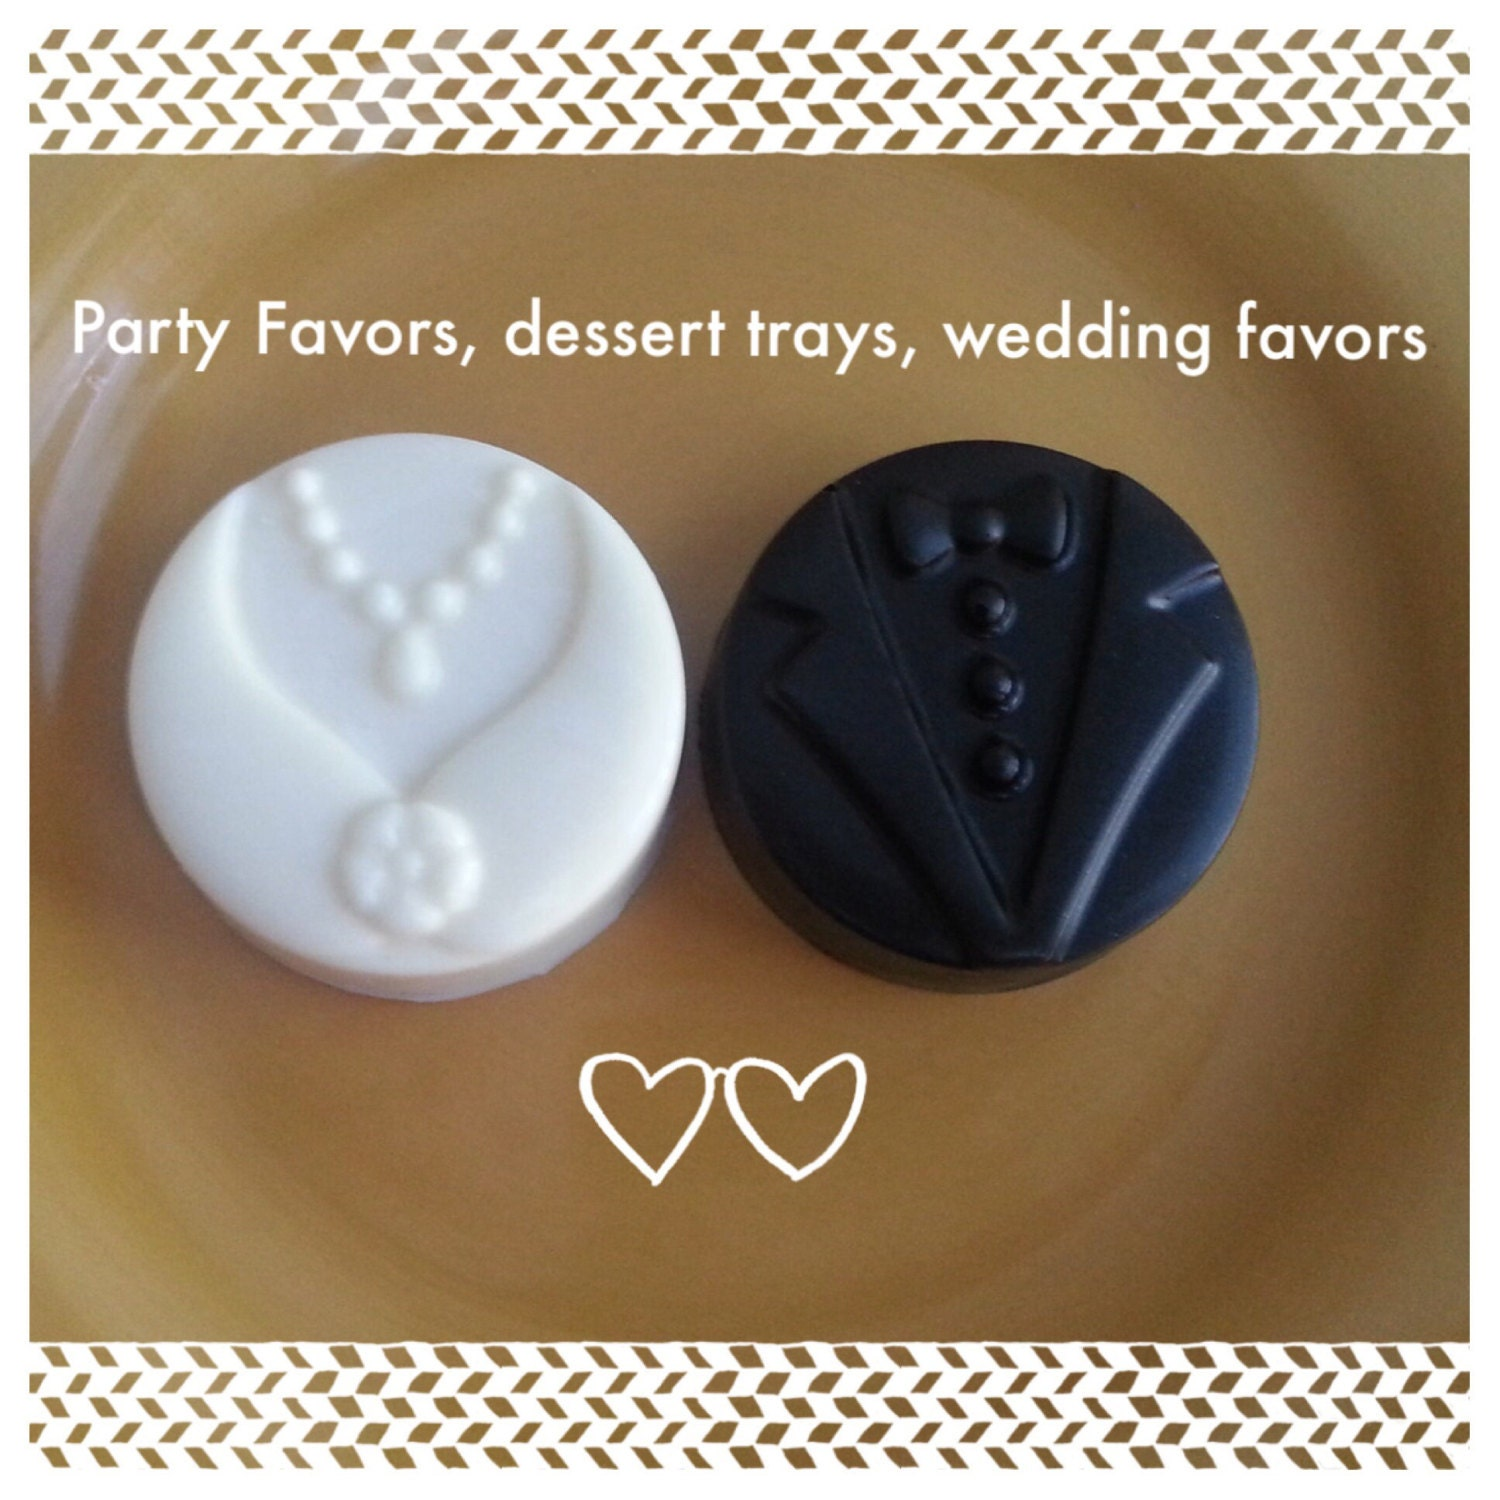 50 Bride and Groom Chocolate Covered Oreos bridal shower favors